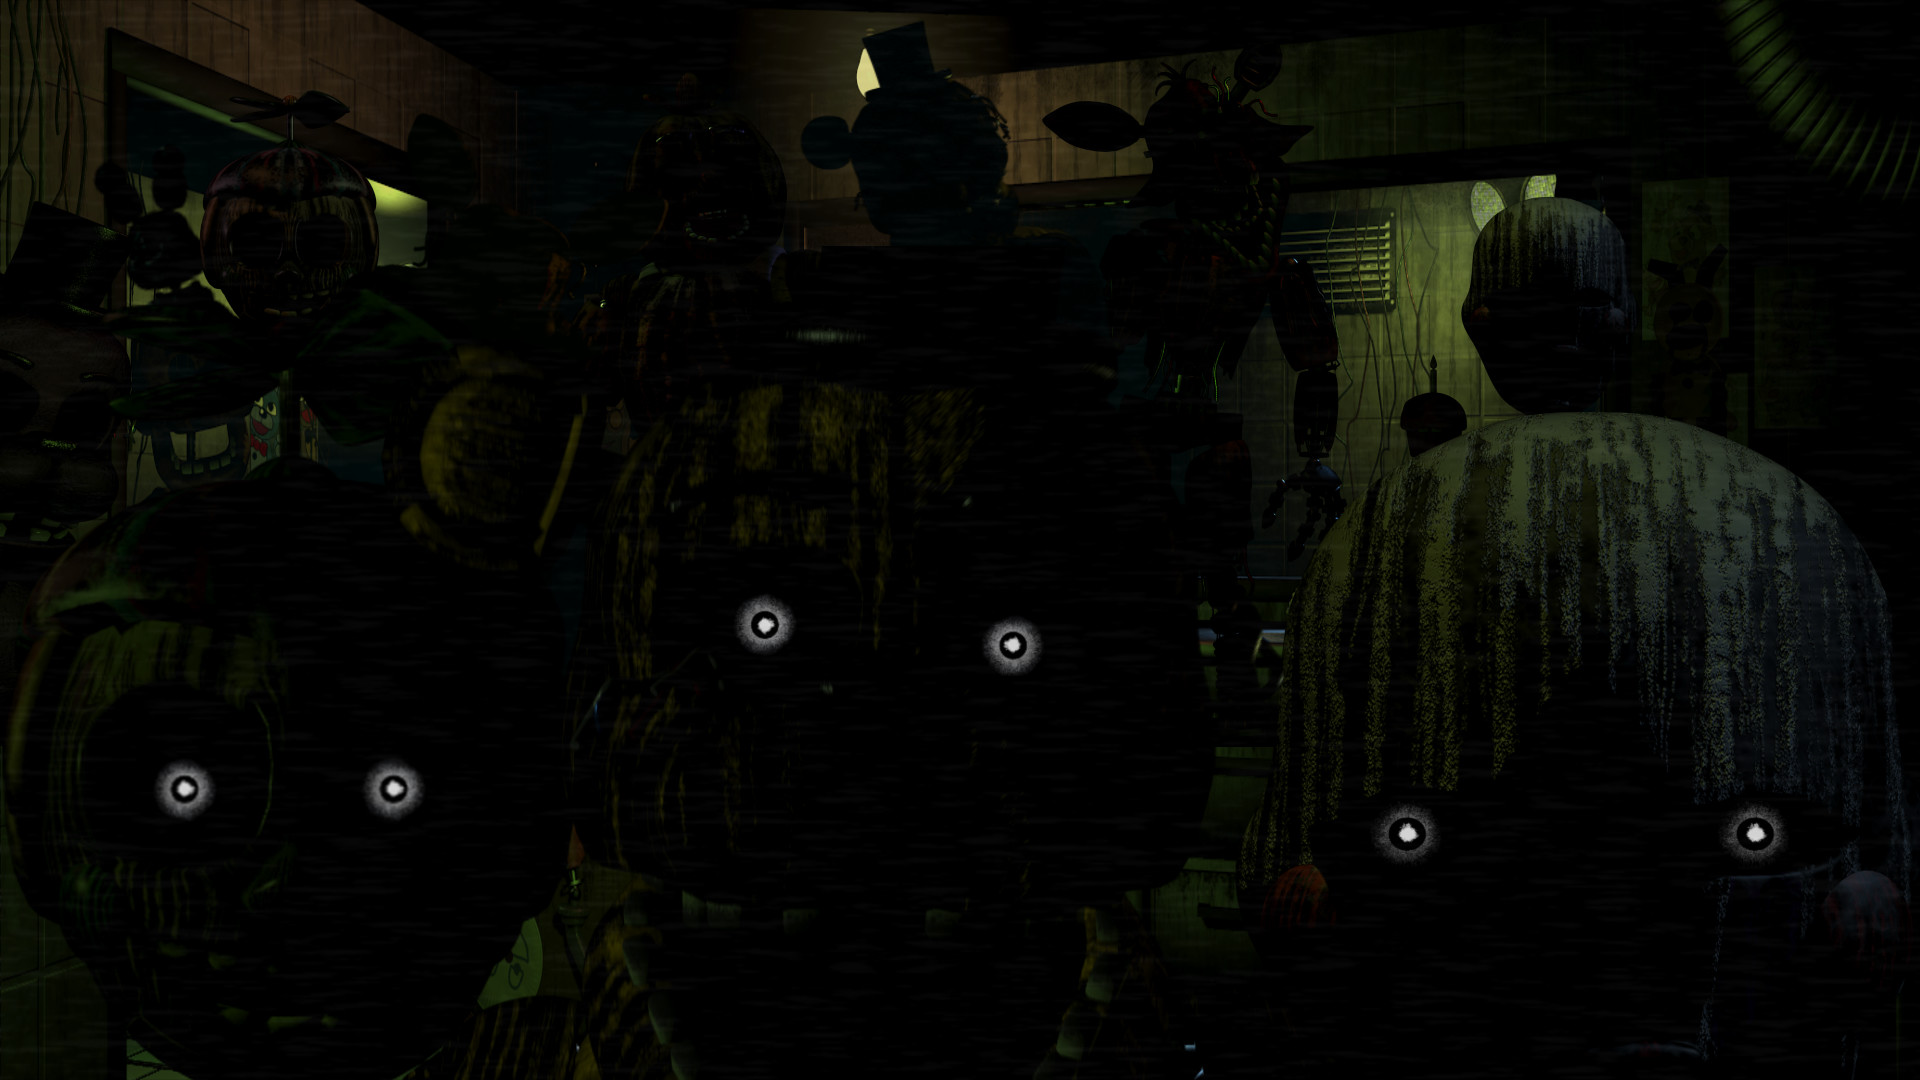 1920x1080 PC.177177, FNAF Thank You HD Photo